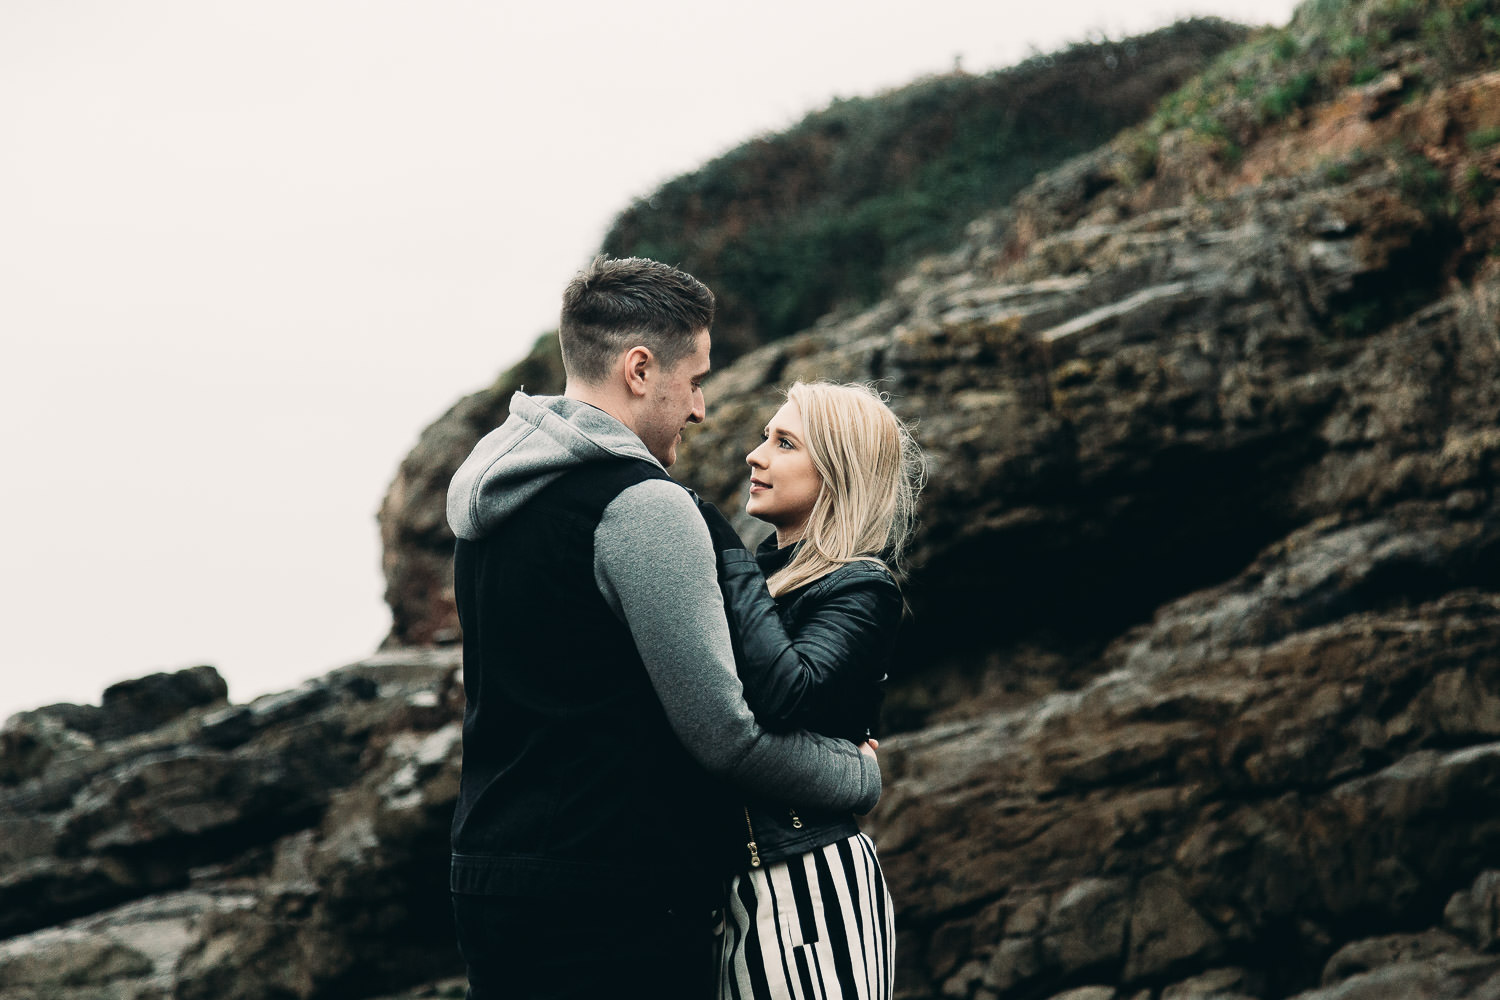 Bide and groom look into each others eyes standing near cliff on seaside engagement shoot